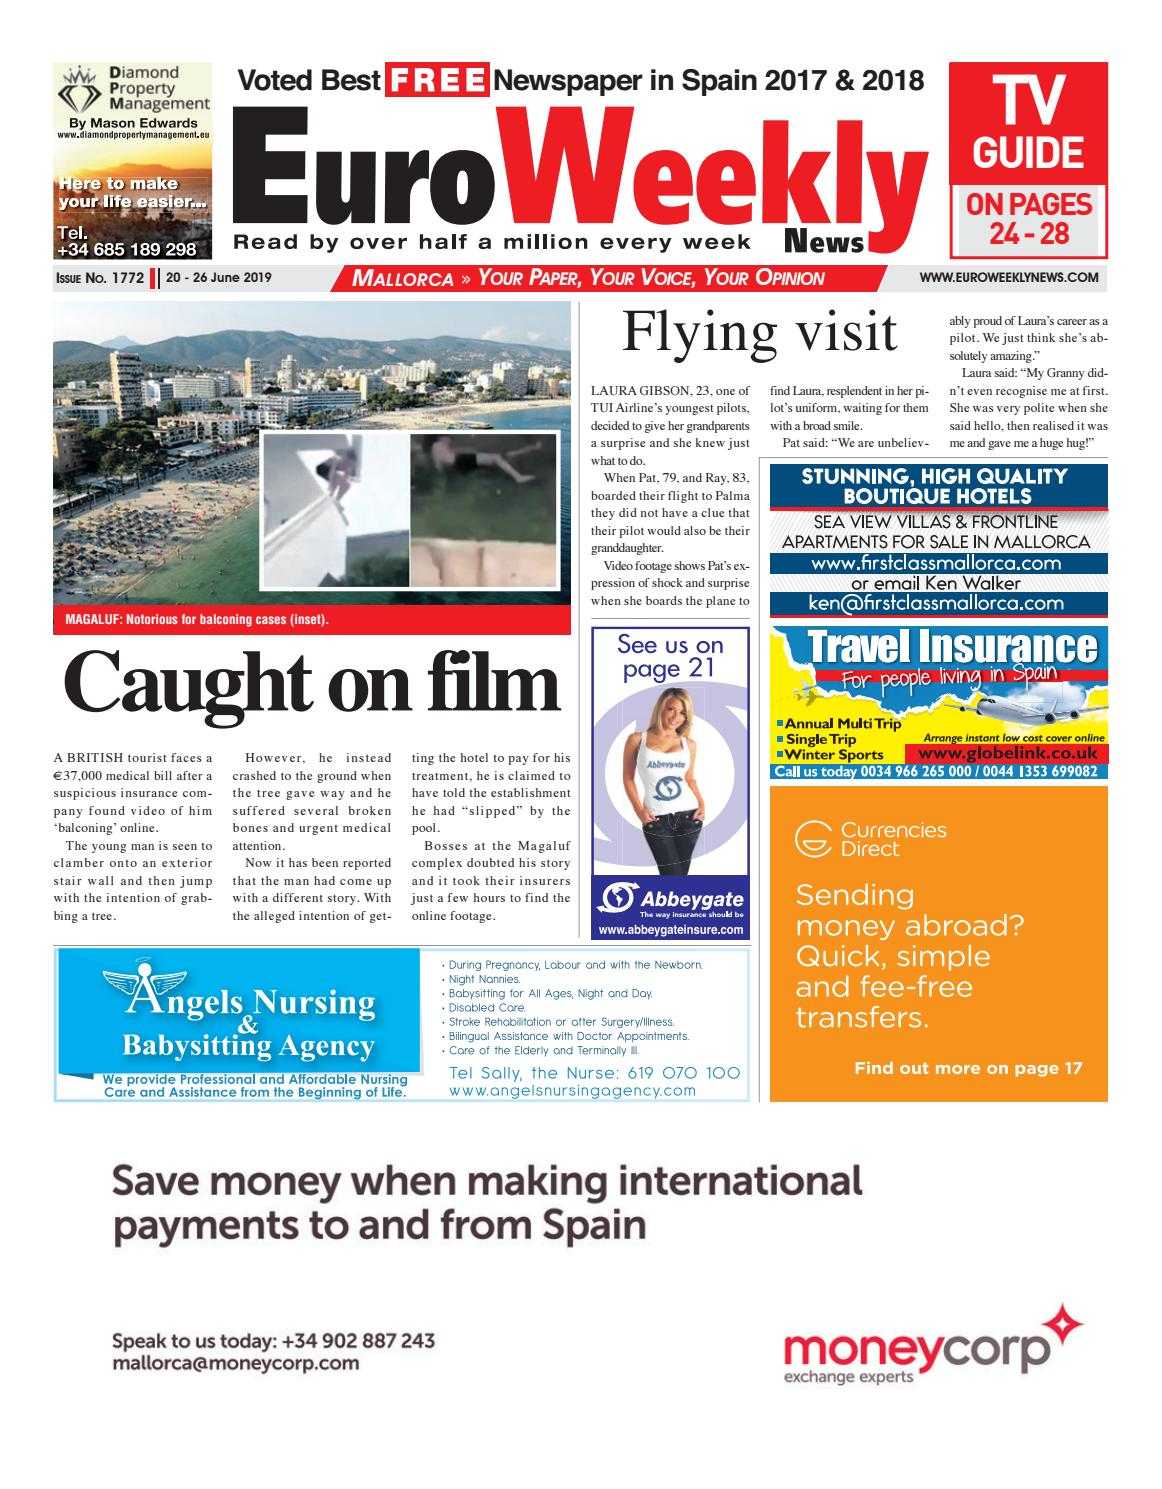 Euro Weekly News - Mallorca 20 - 26 June 2019 Issue 1772 by